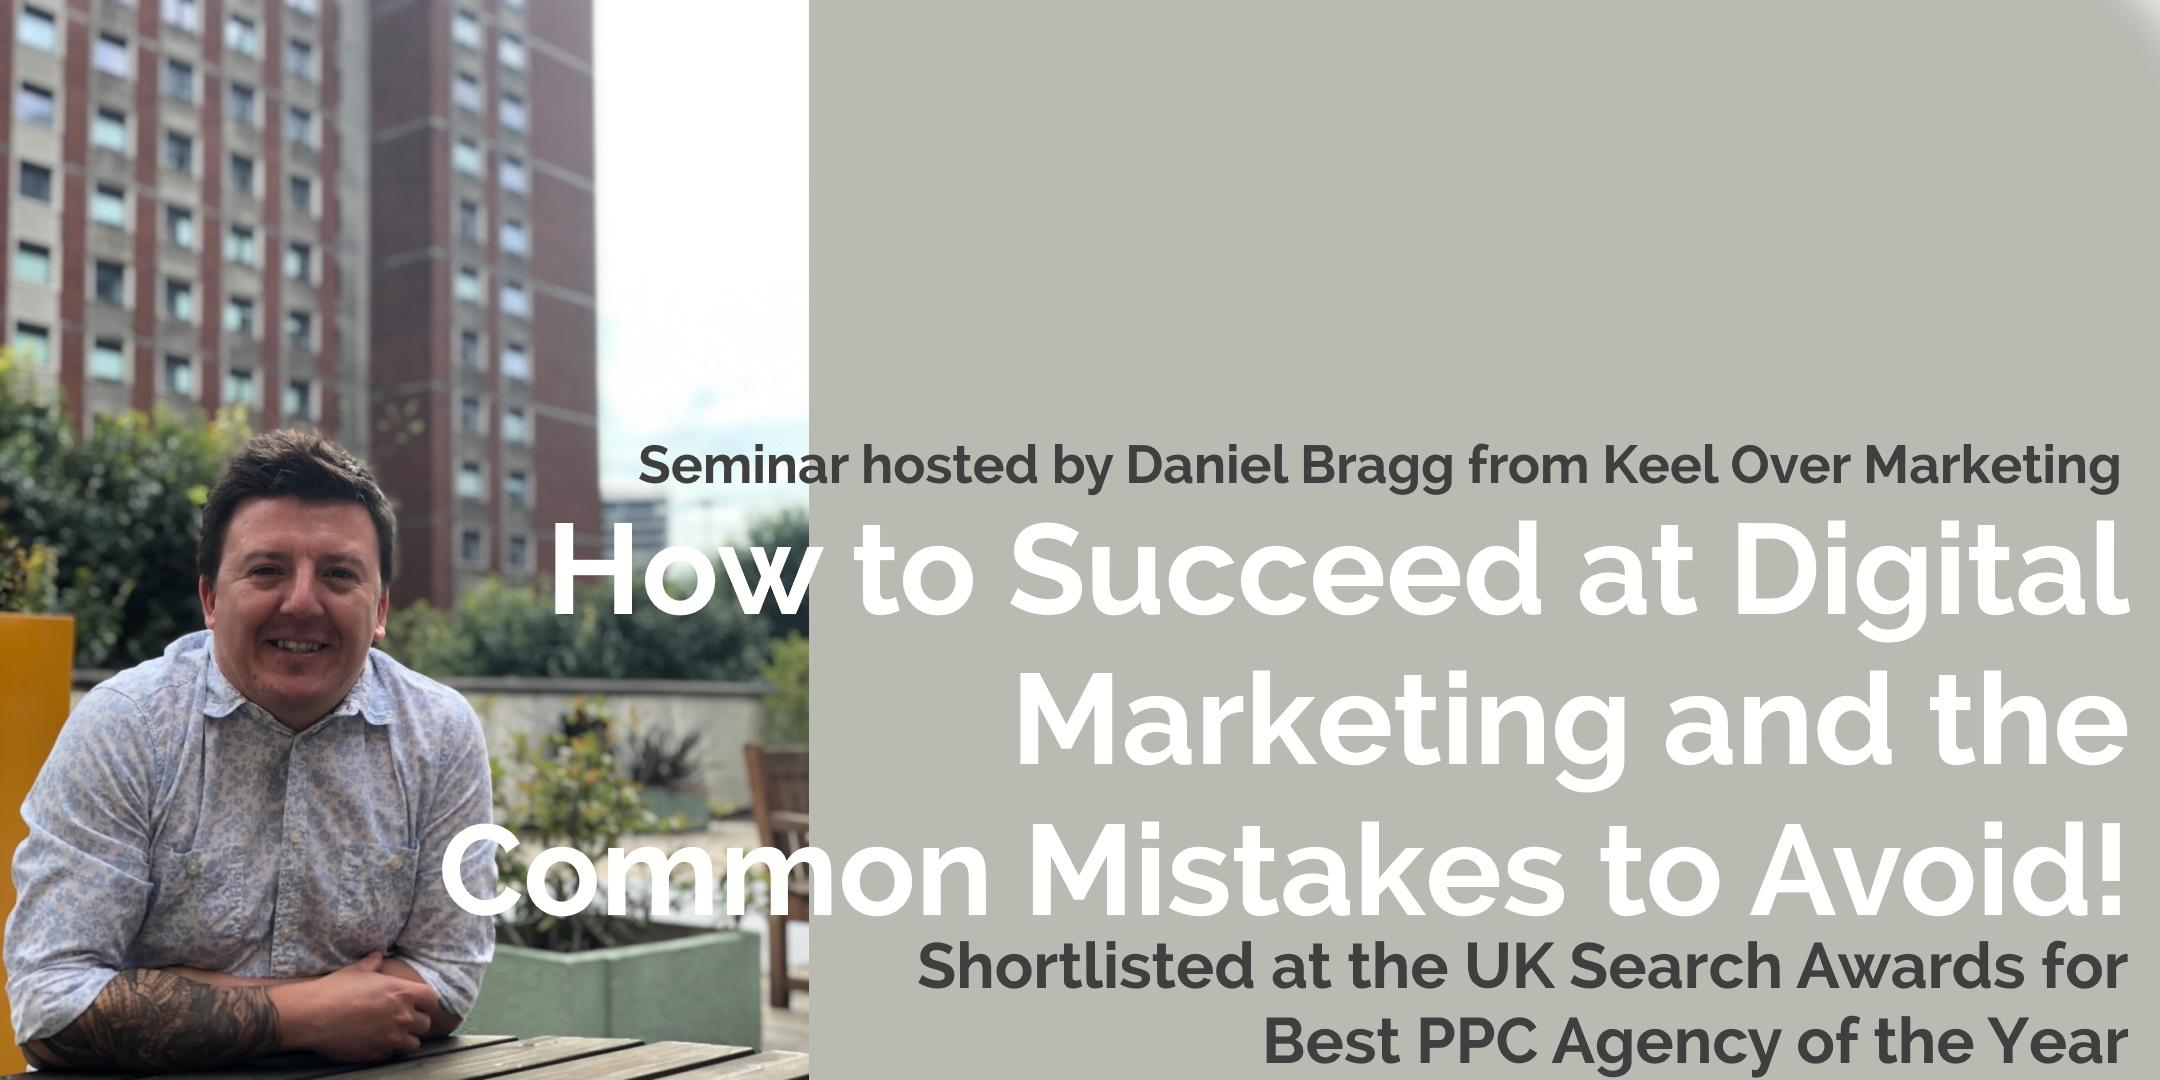 How to Succeed at Digital Marketing and the Common Mistakes to Avoid!